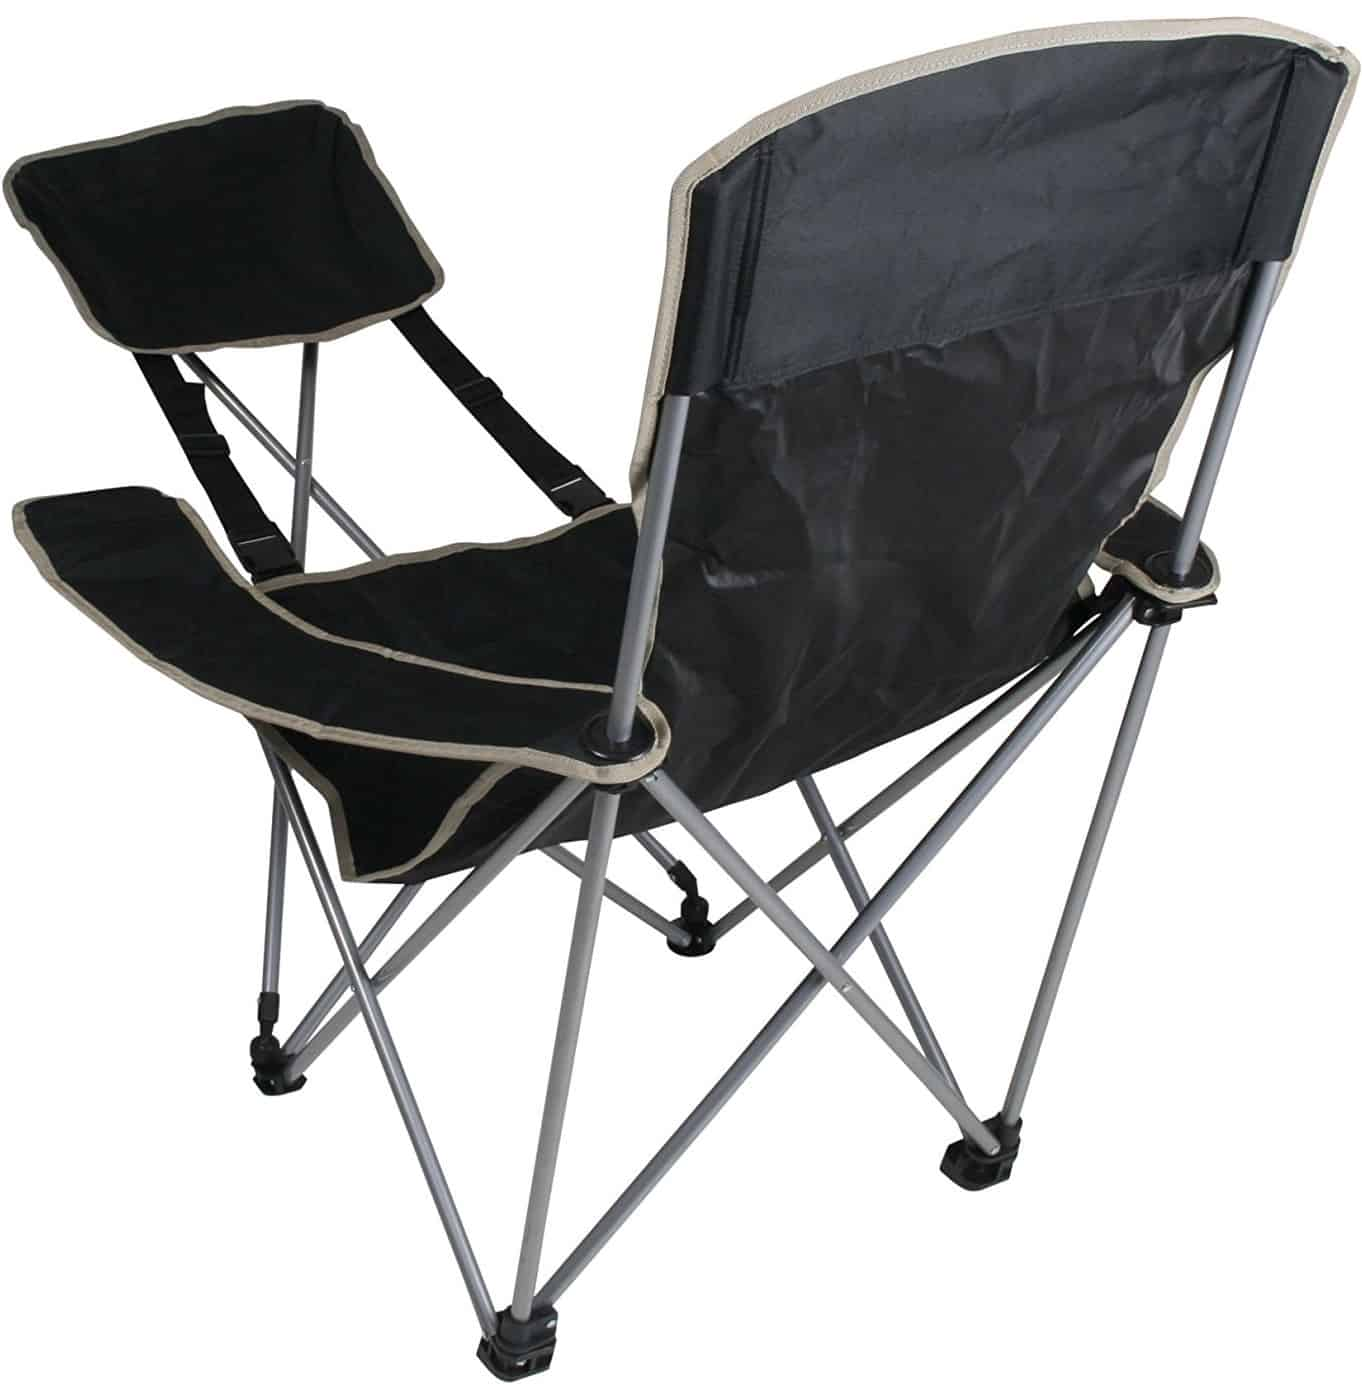 Camper Chairs Camping Chair Reviews What Are The Best Camping Chairs